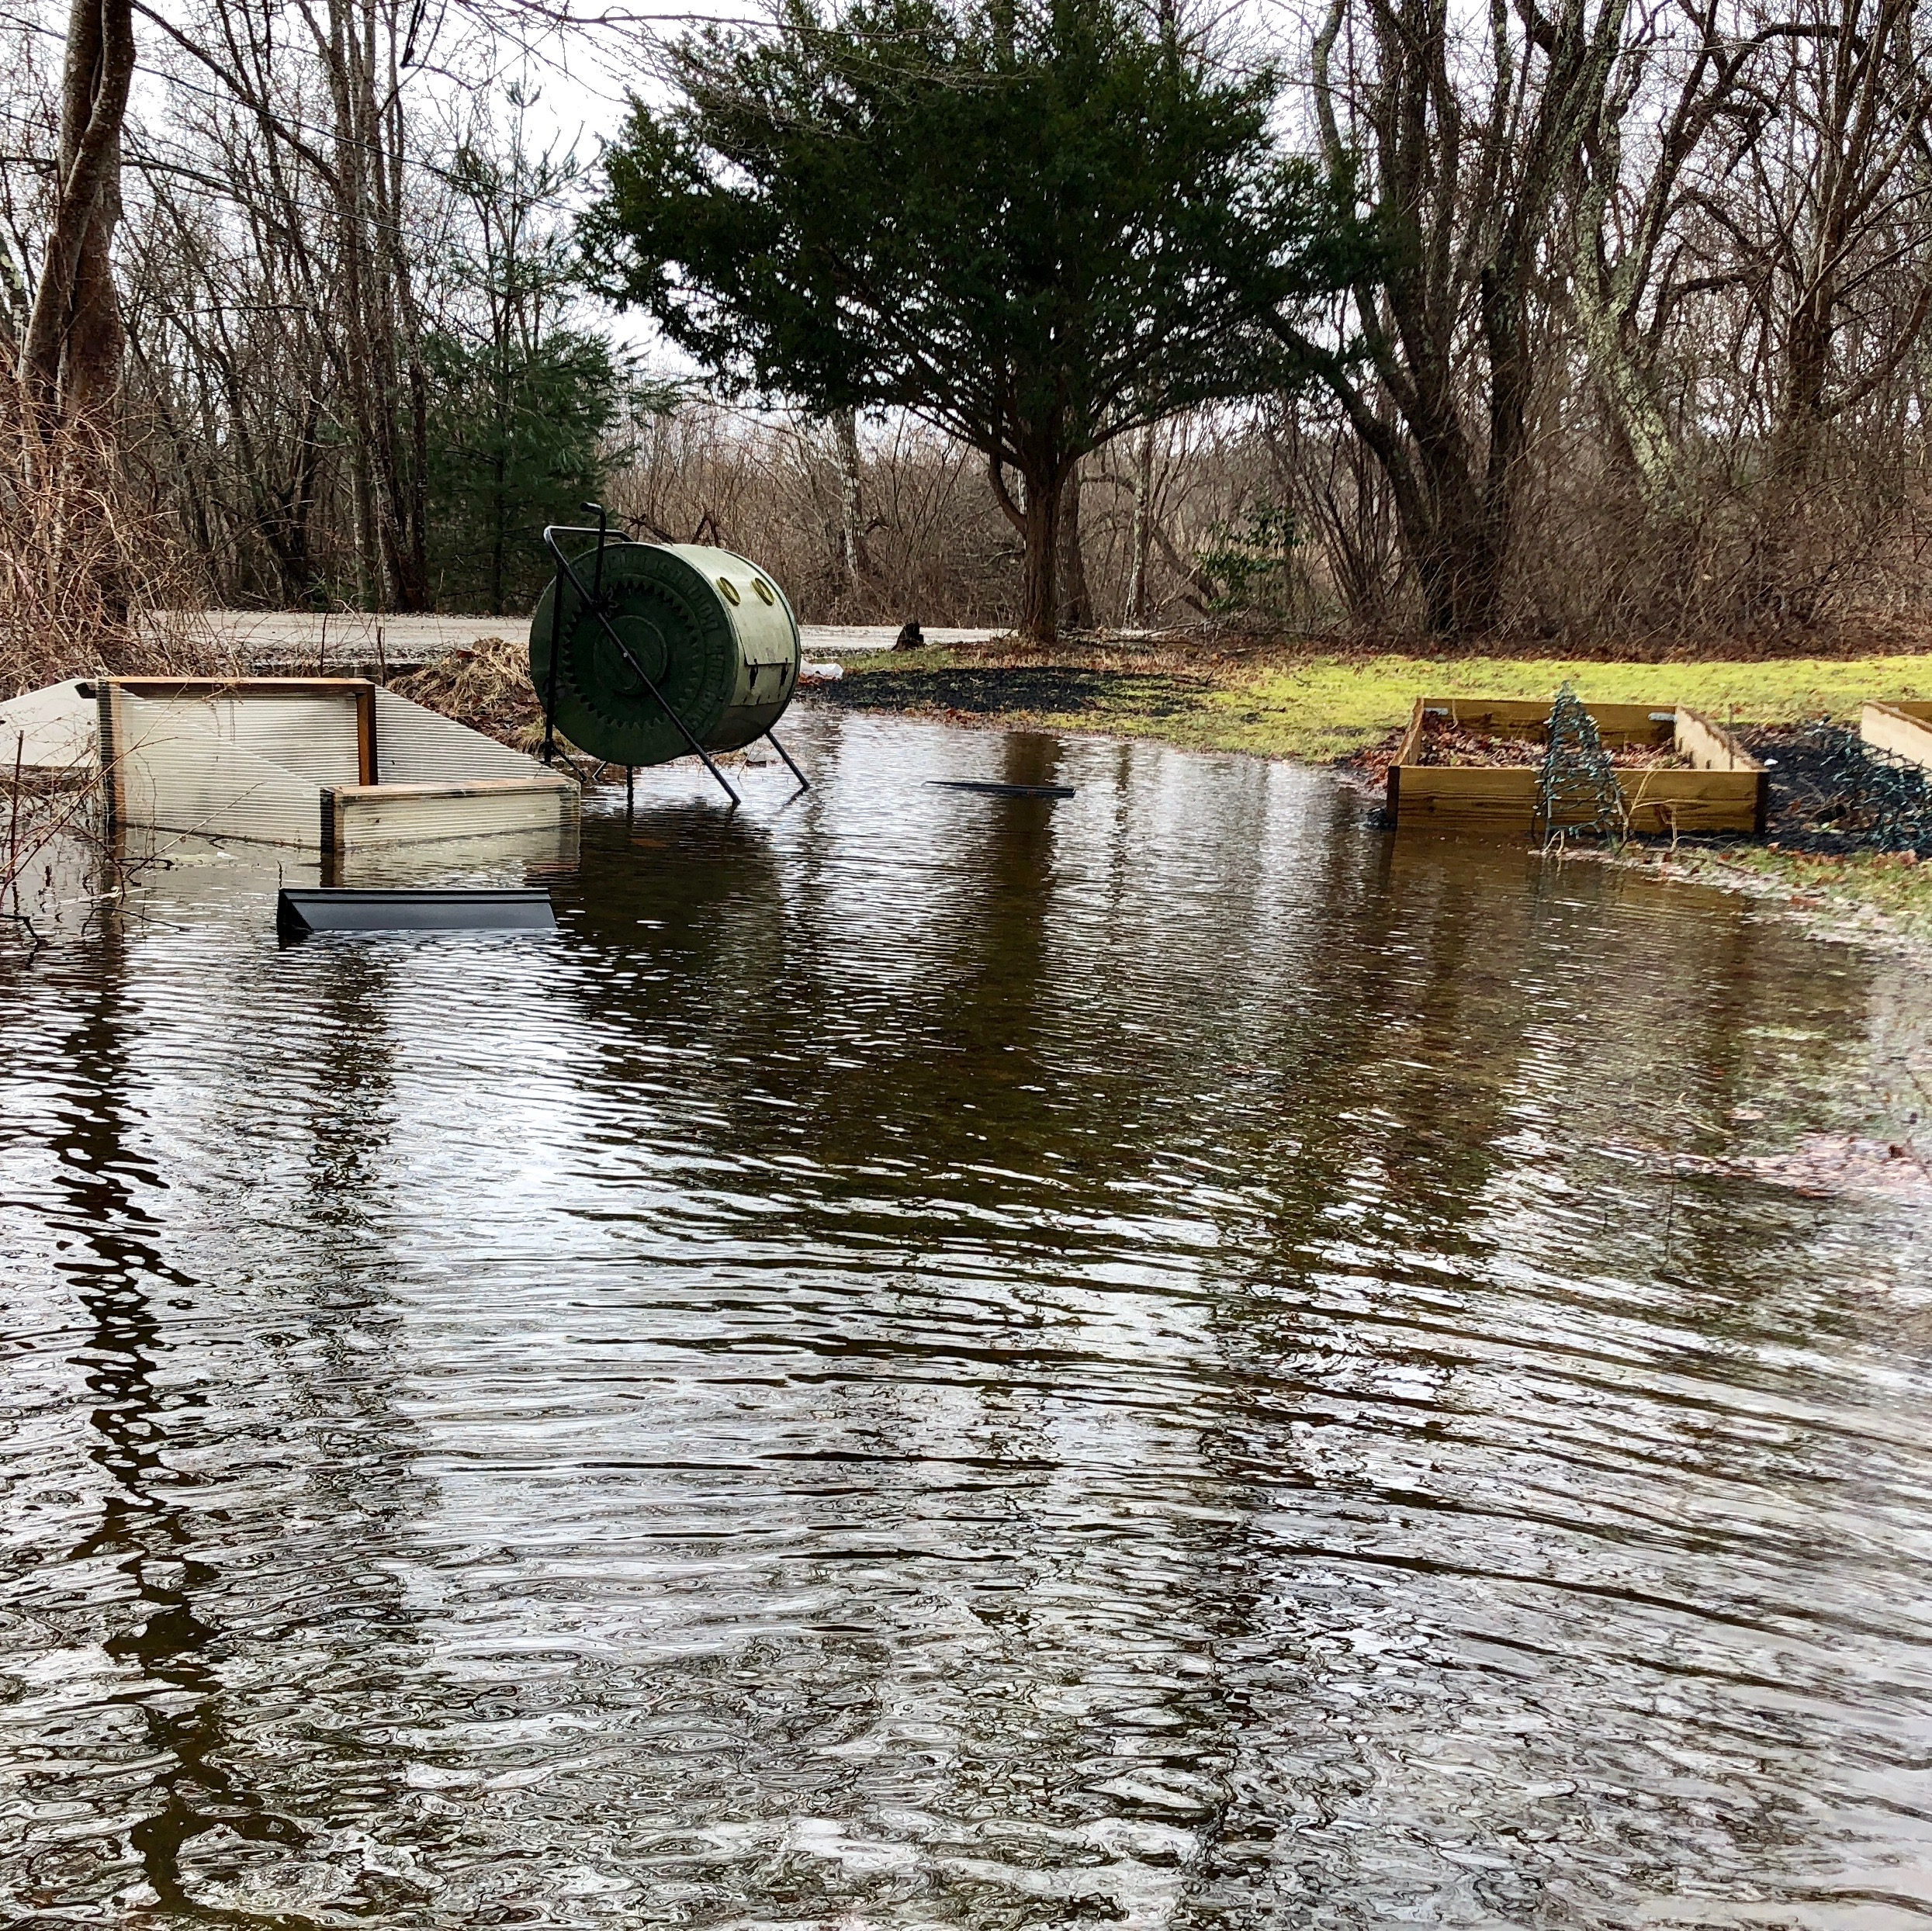 By 3:00 PM, garden-area was floating away, and we're five miles from the bay